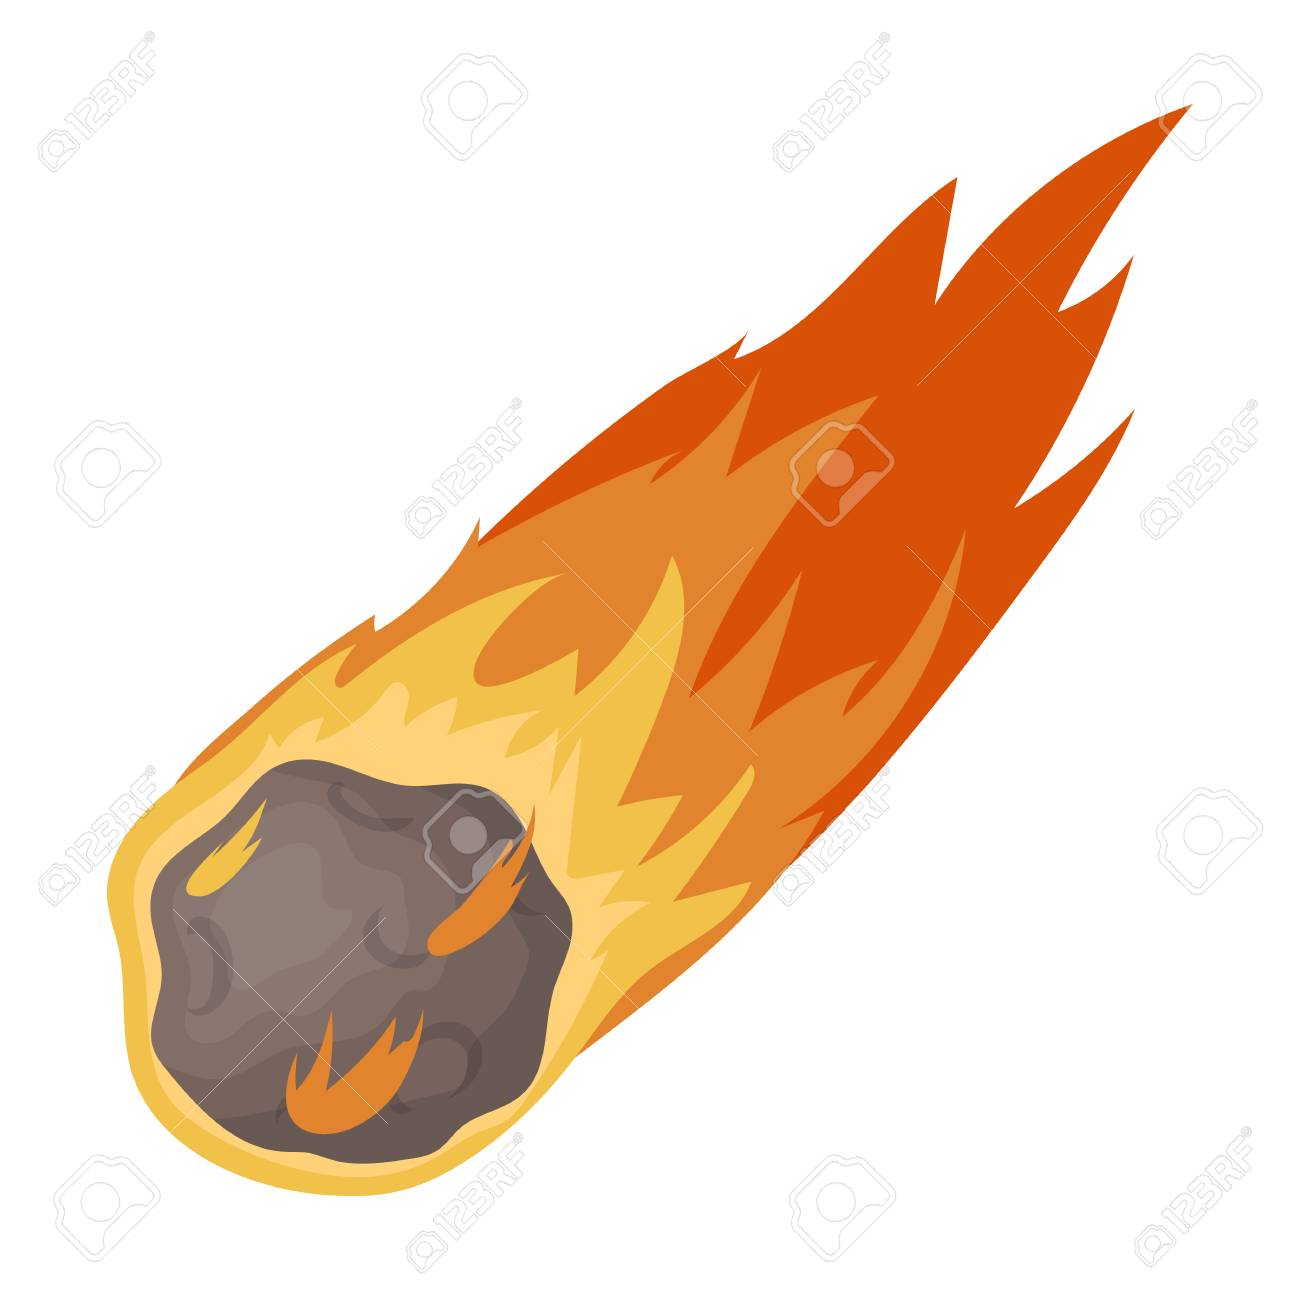 Flame meteorite icon in cartoon style isolated on white background. Dinosaurs and prehistoric symbol stock vector illustration. - 70913366